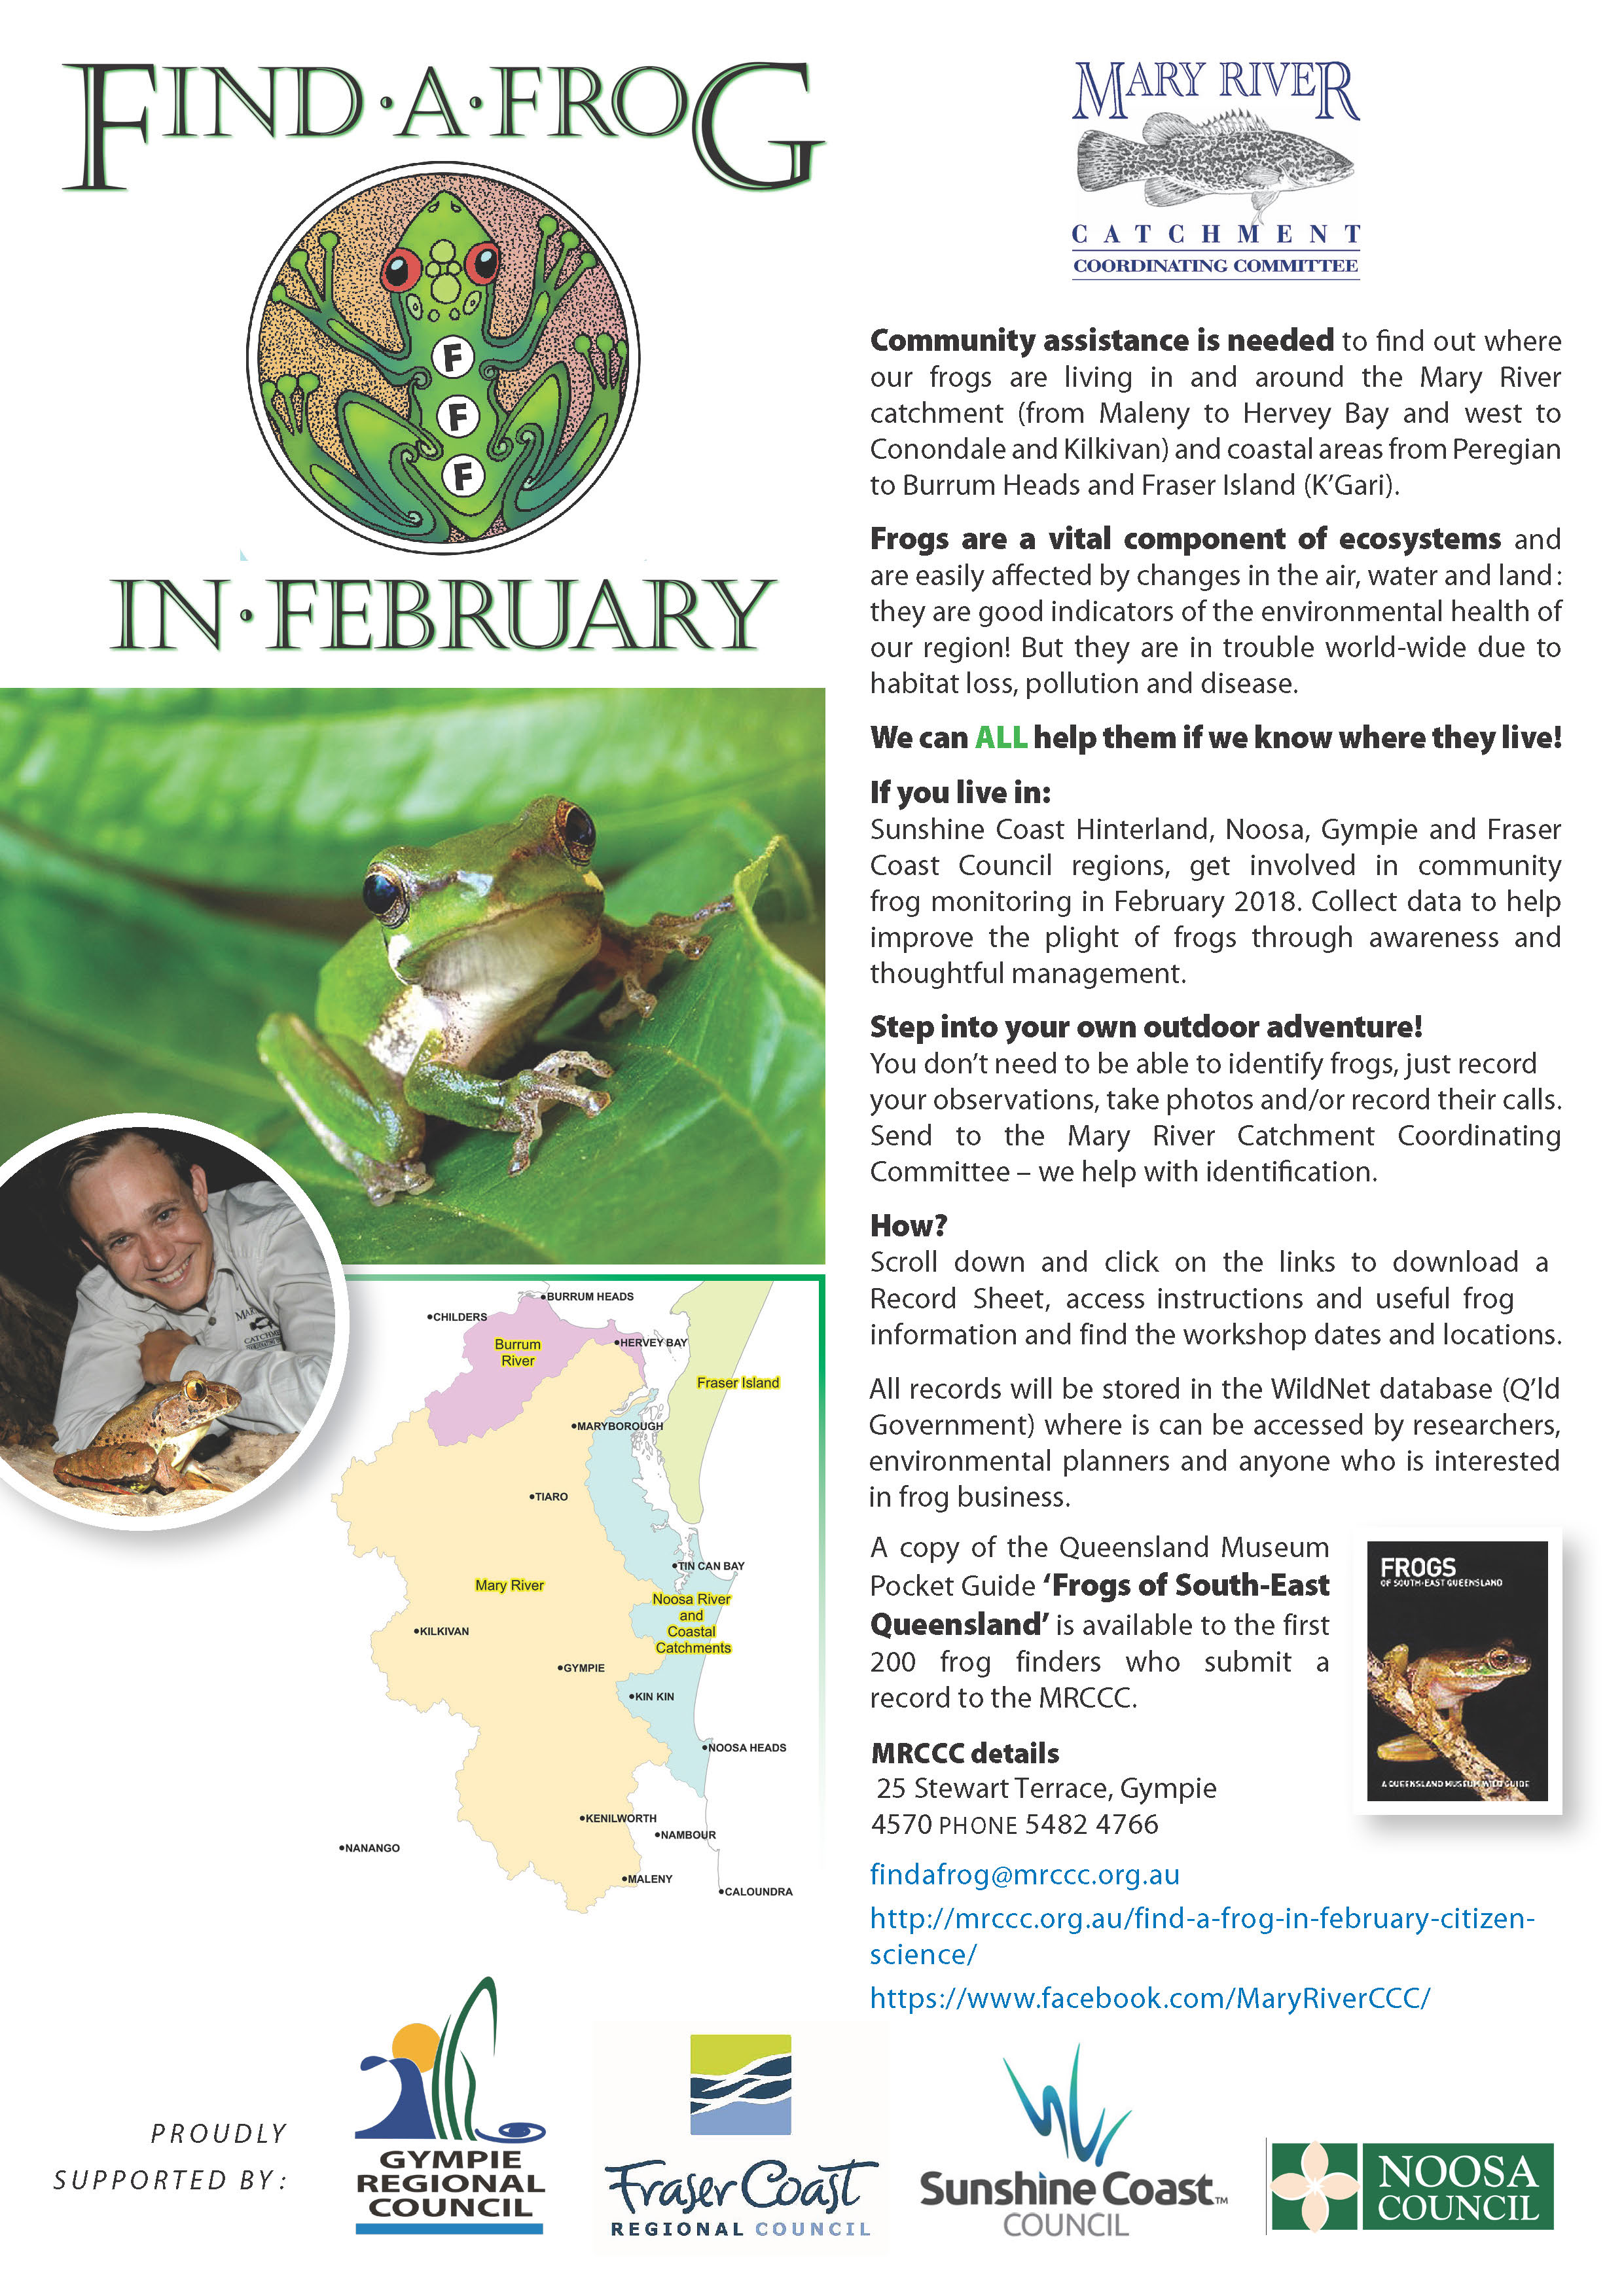 Get Ready To Find A Frog In February